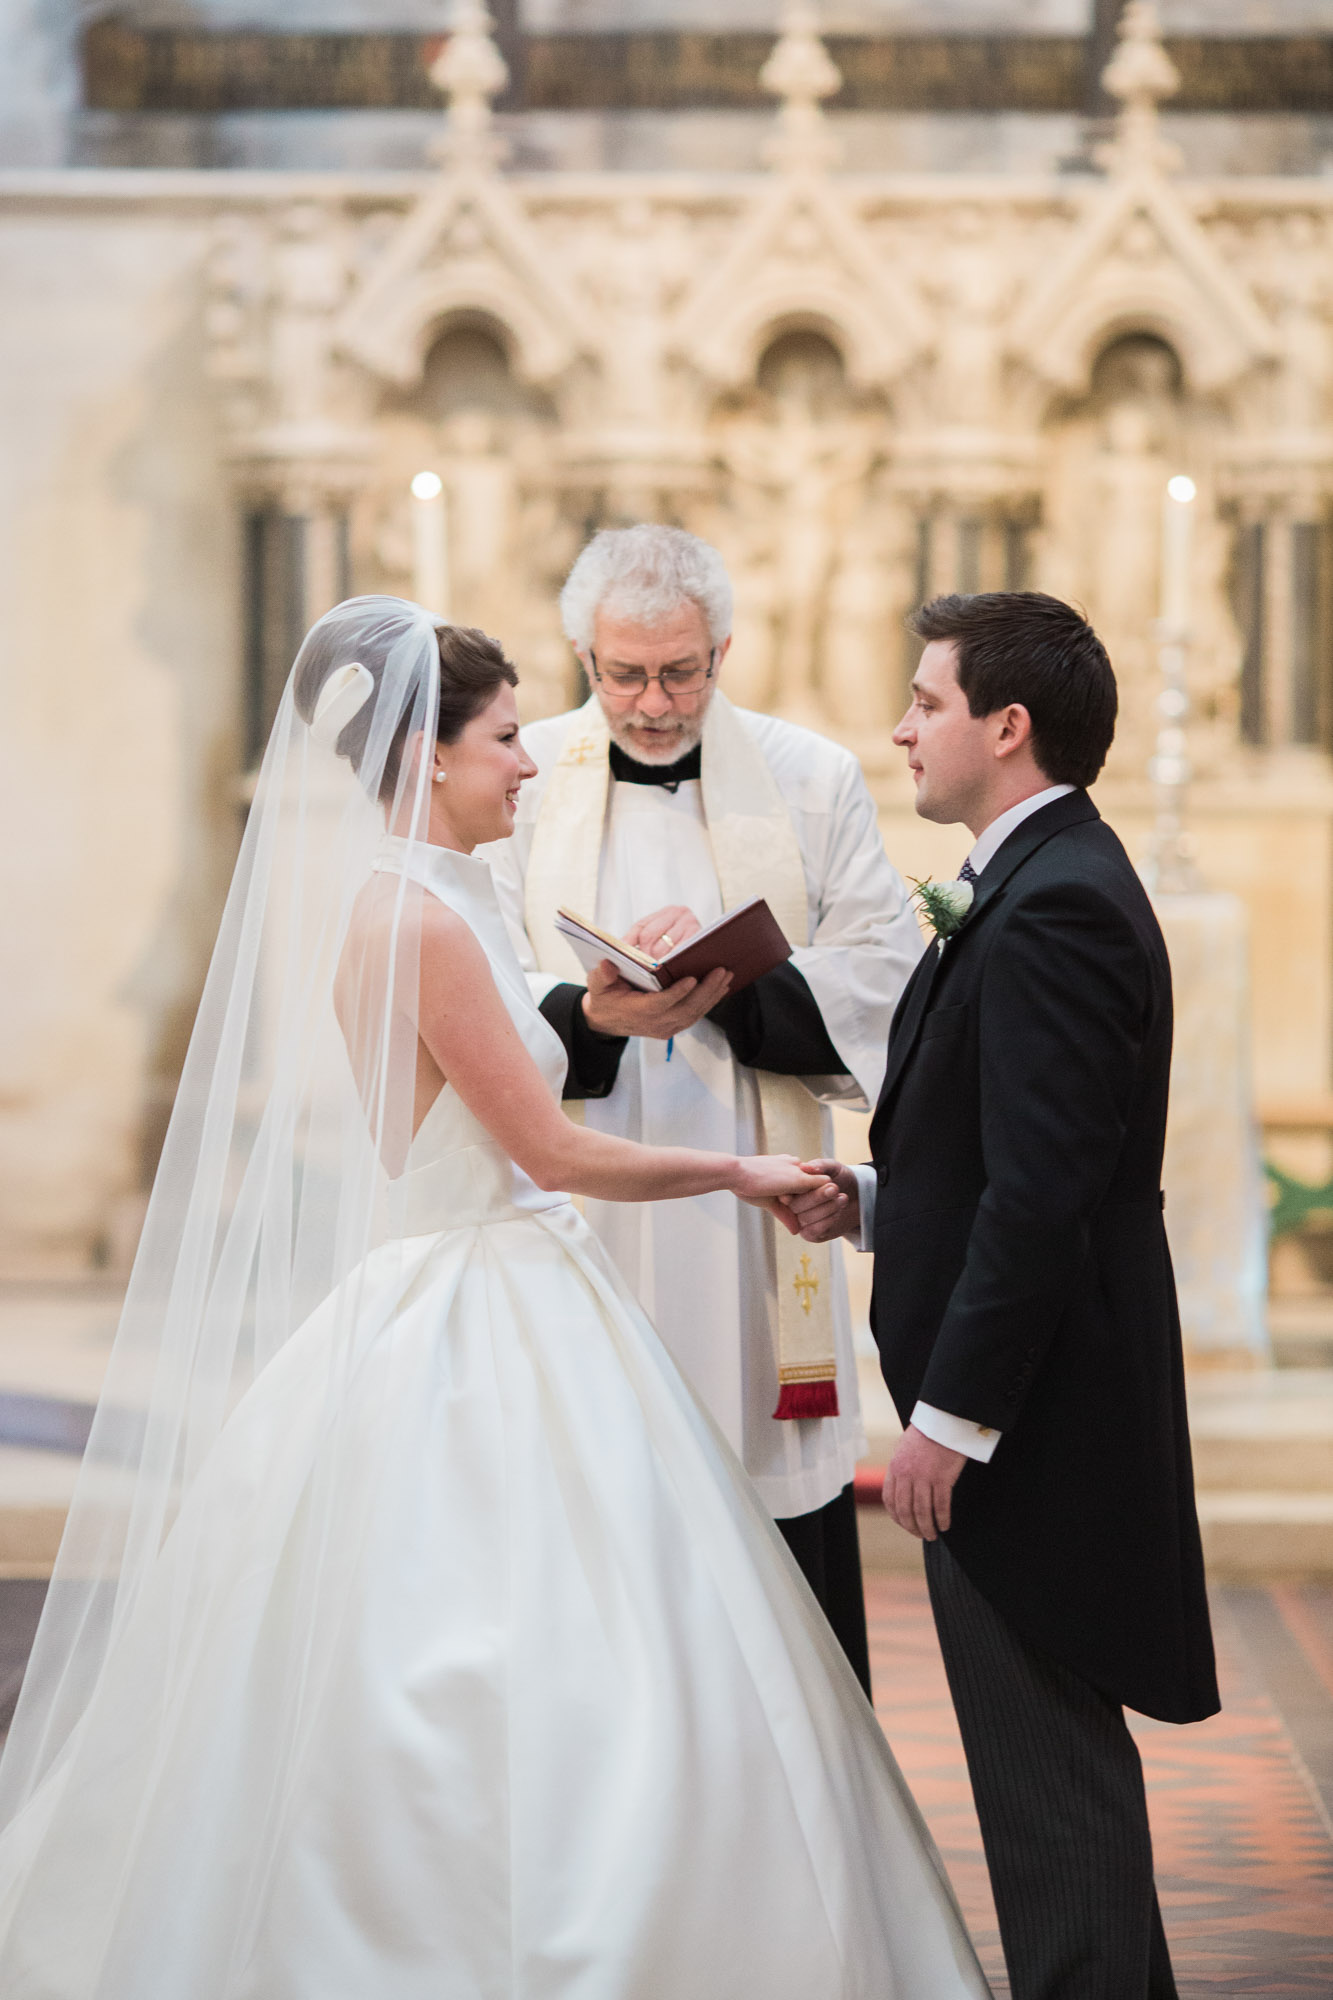 Bride and groom exchanging wedding vows in Boxgrove Priory